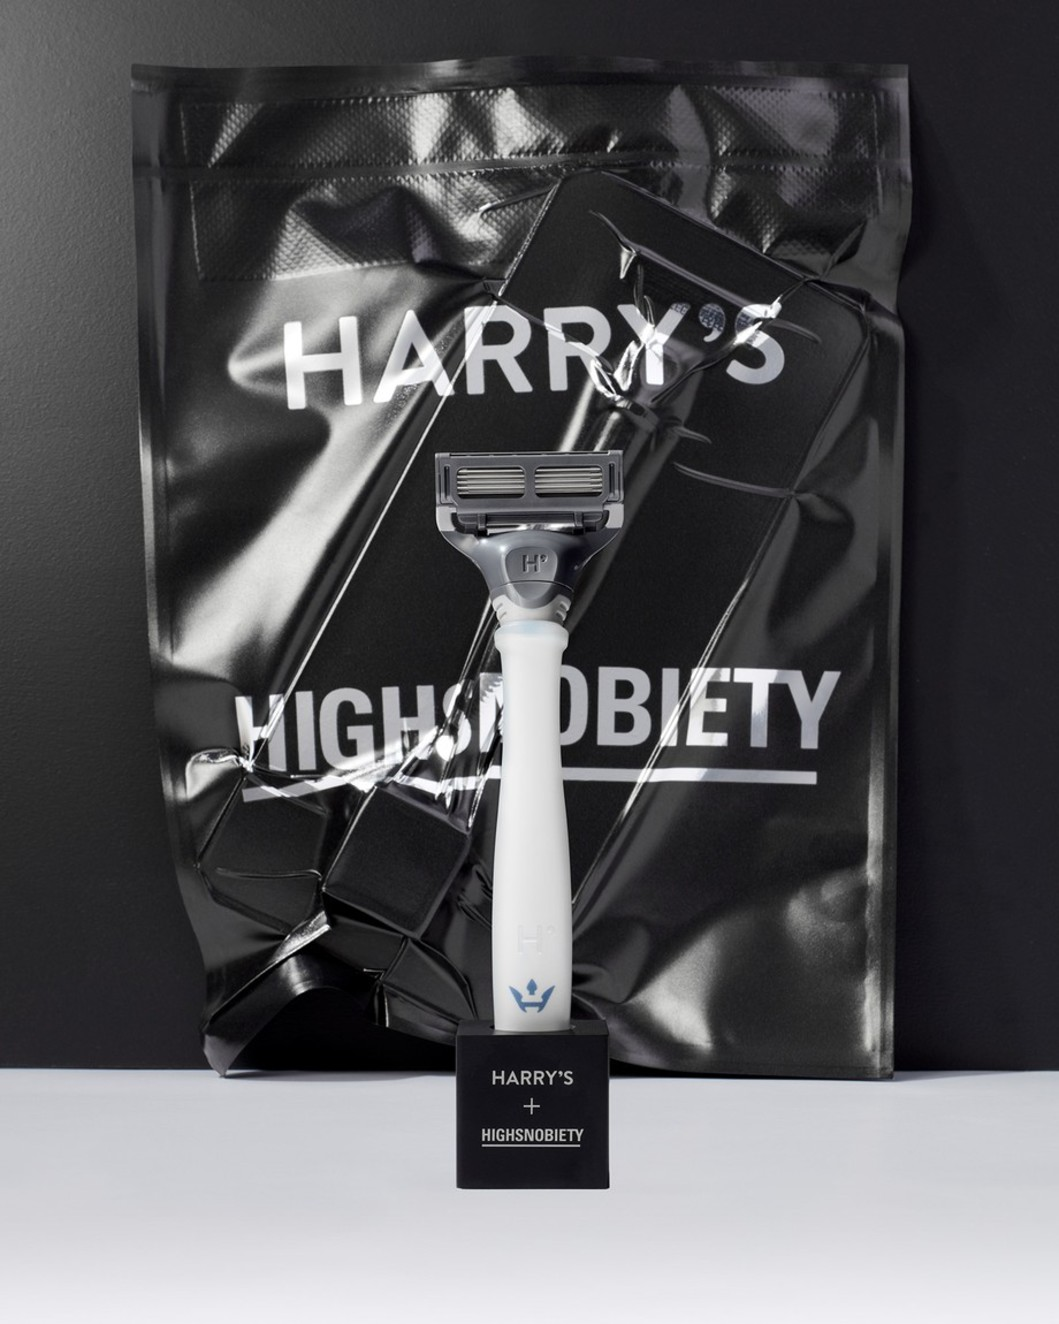 Harry's and Highsnobiety Collaboration Packaging